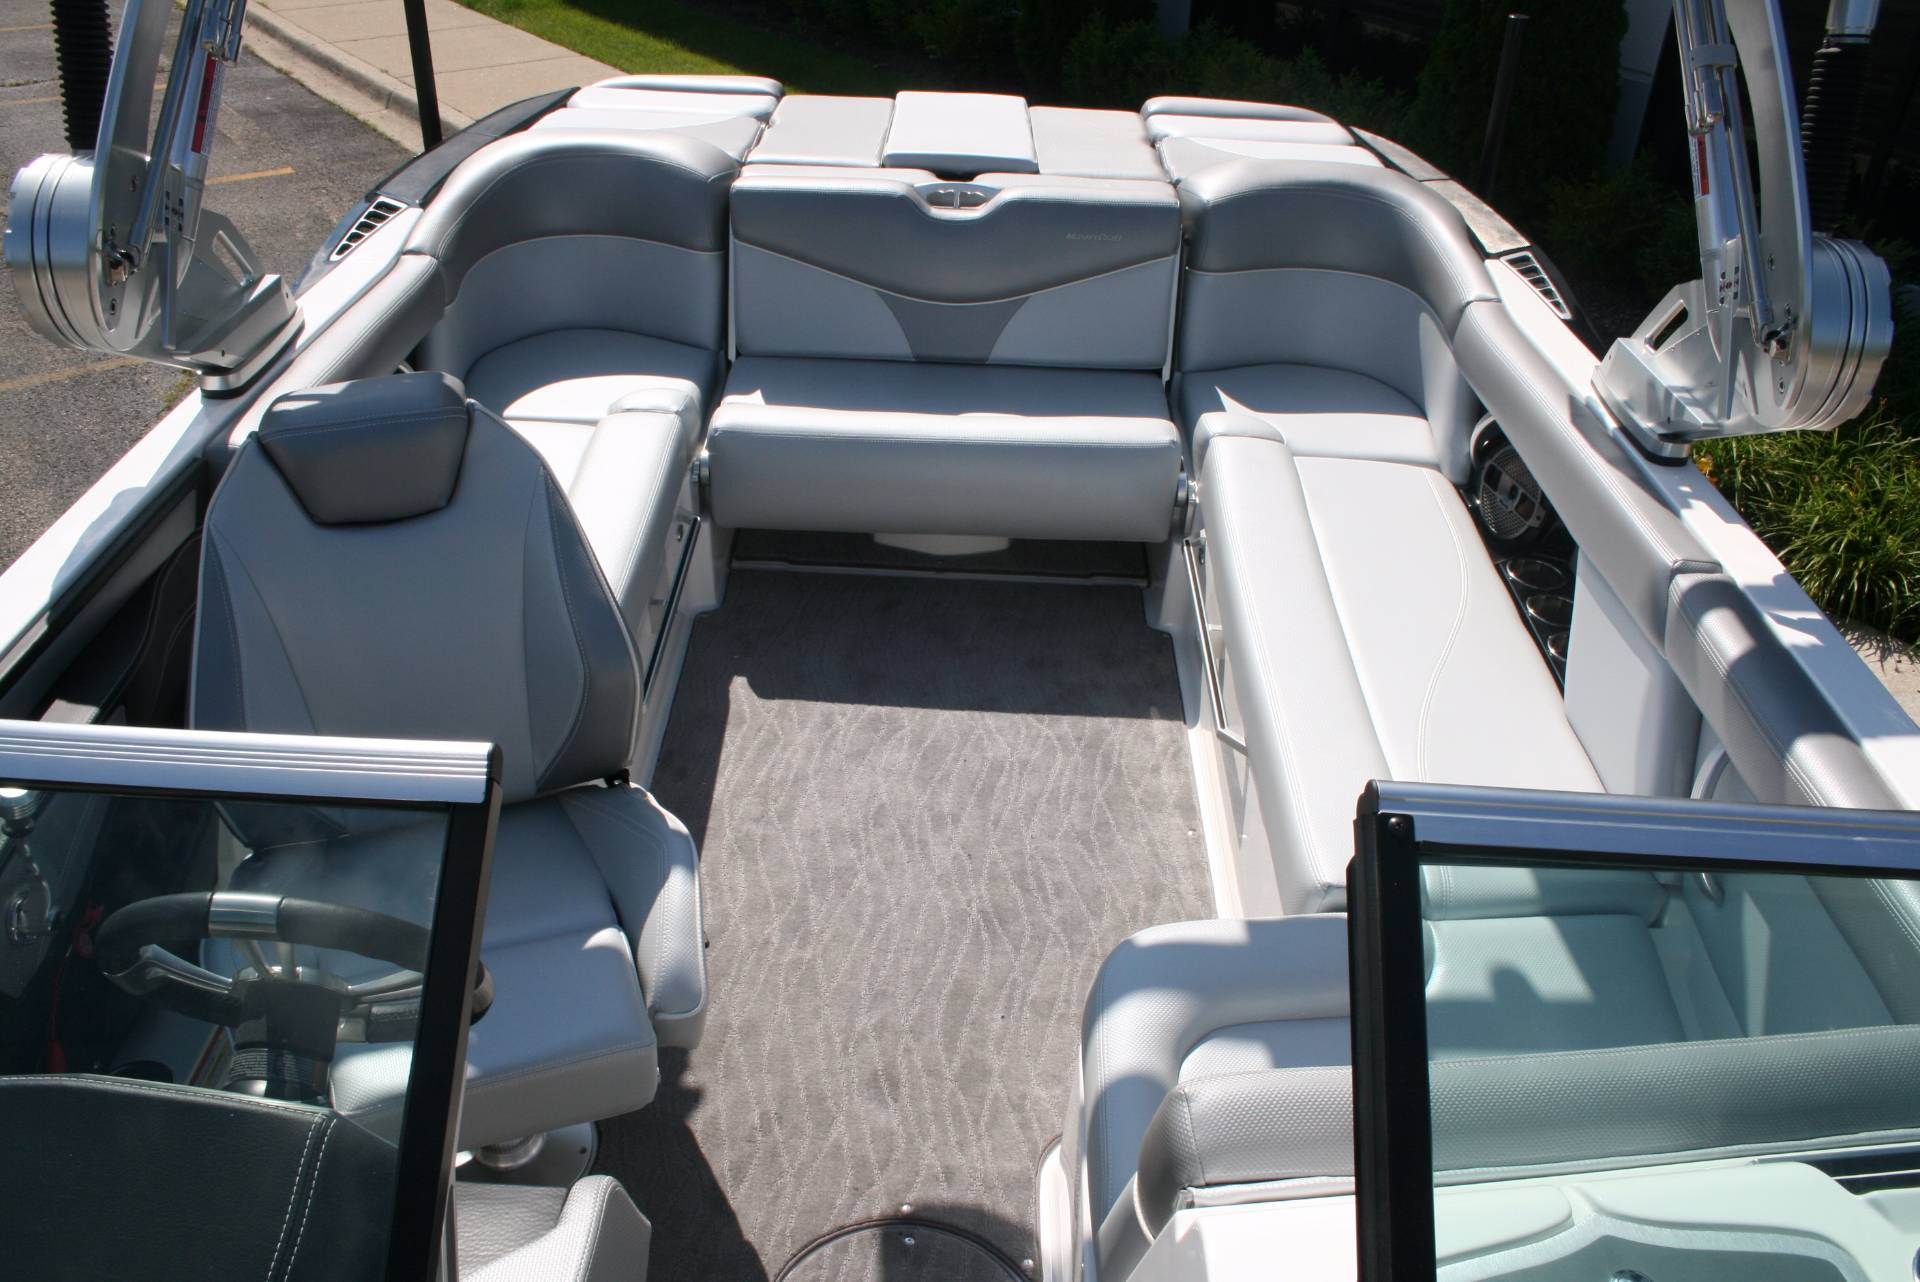 2018 Mastercraft XT22 in Lake Zurich, Illinois